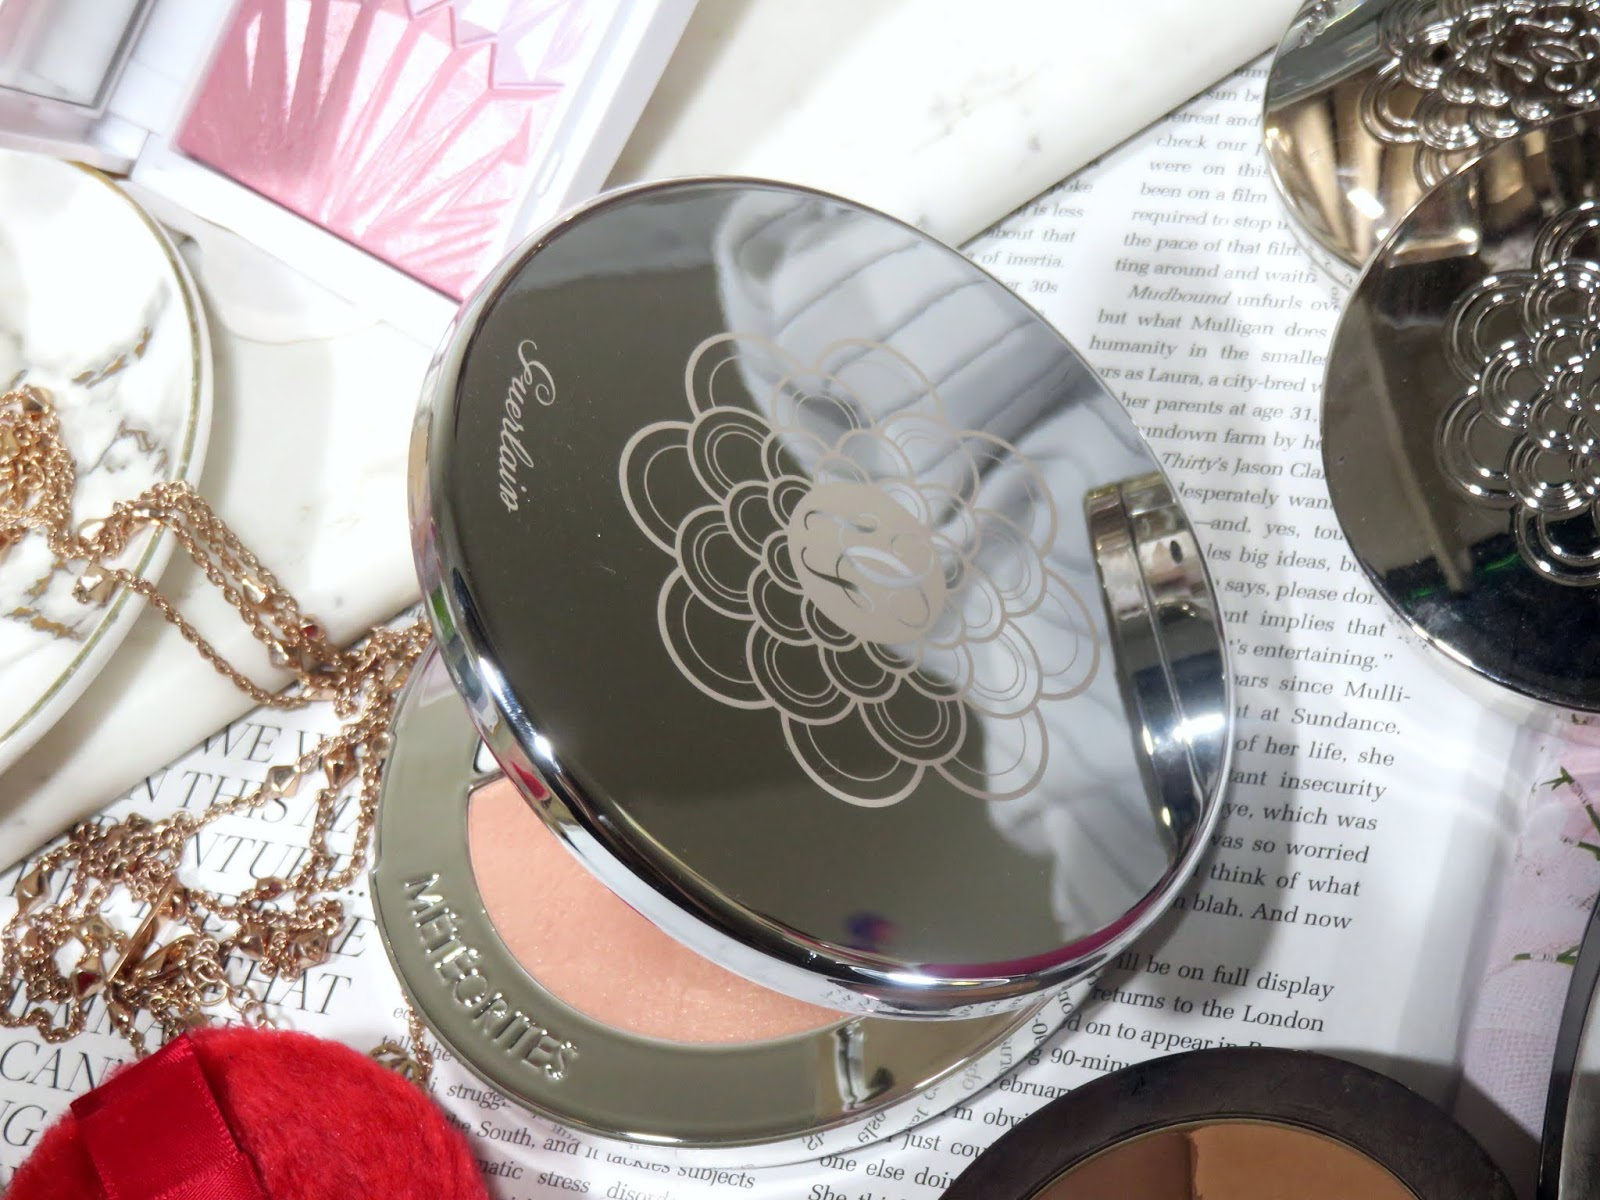 Guerlain Meteorites Highlighter Palette Review and Swatches